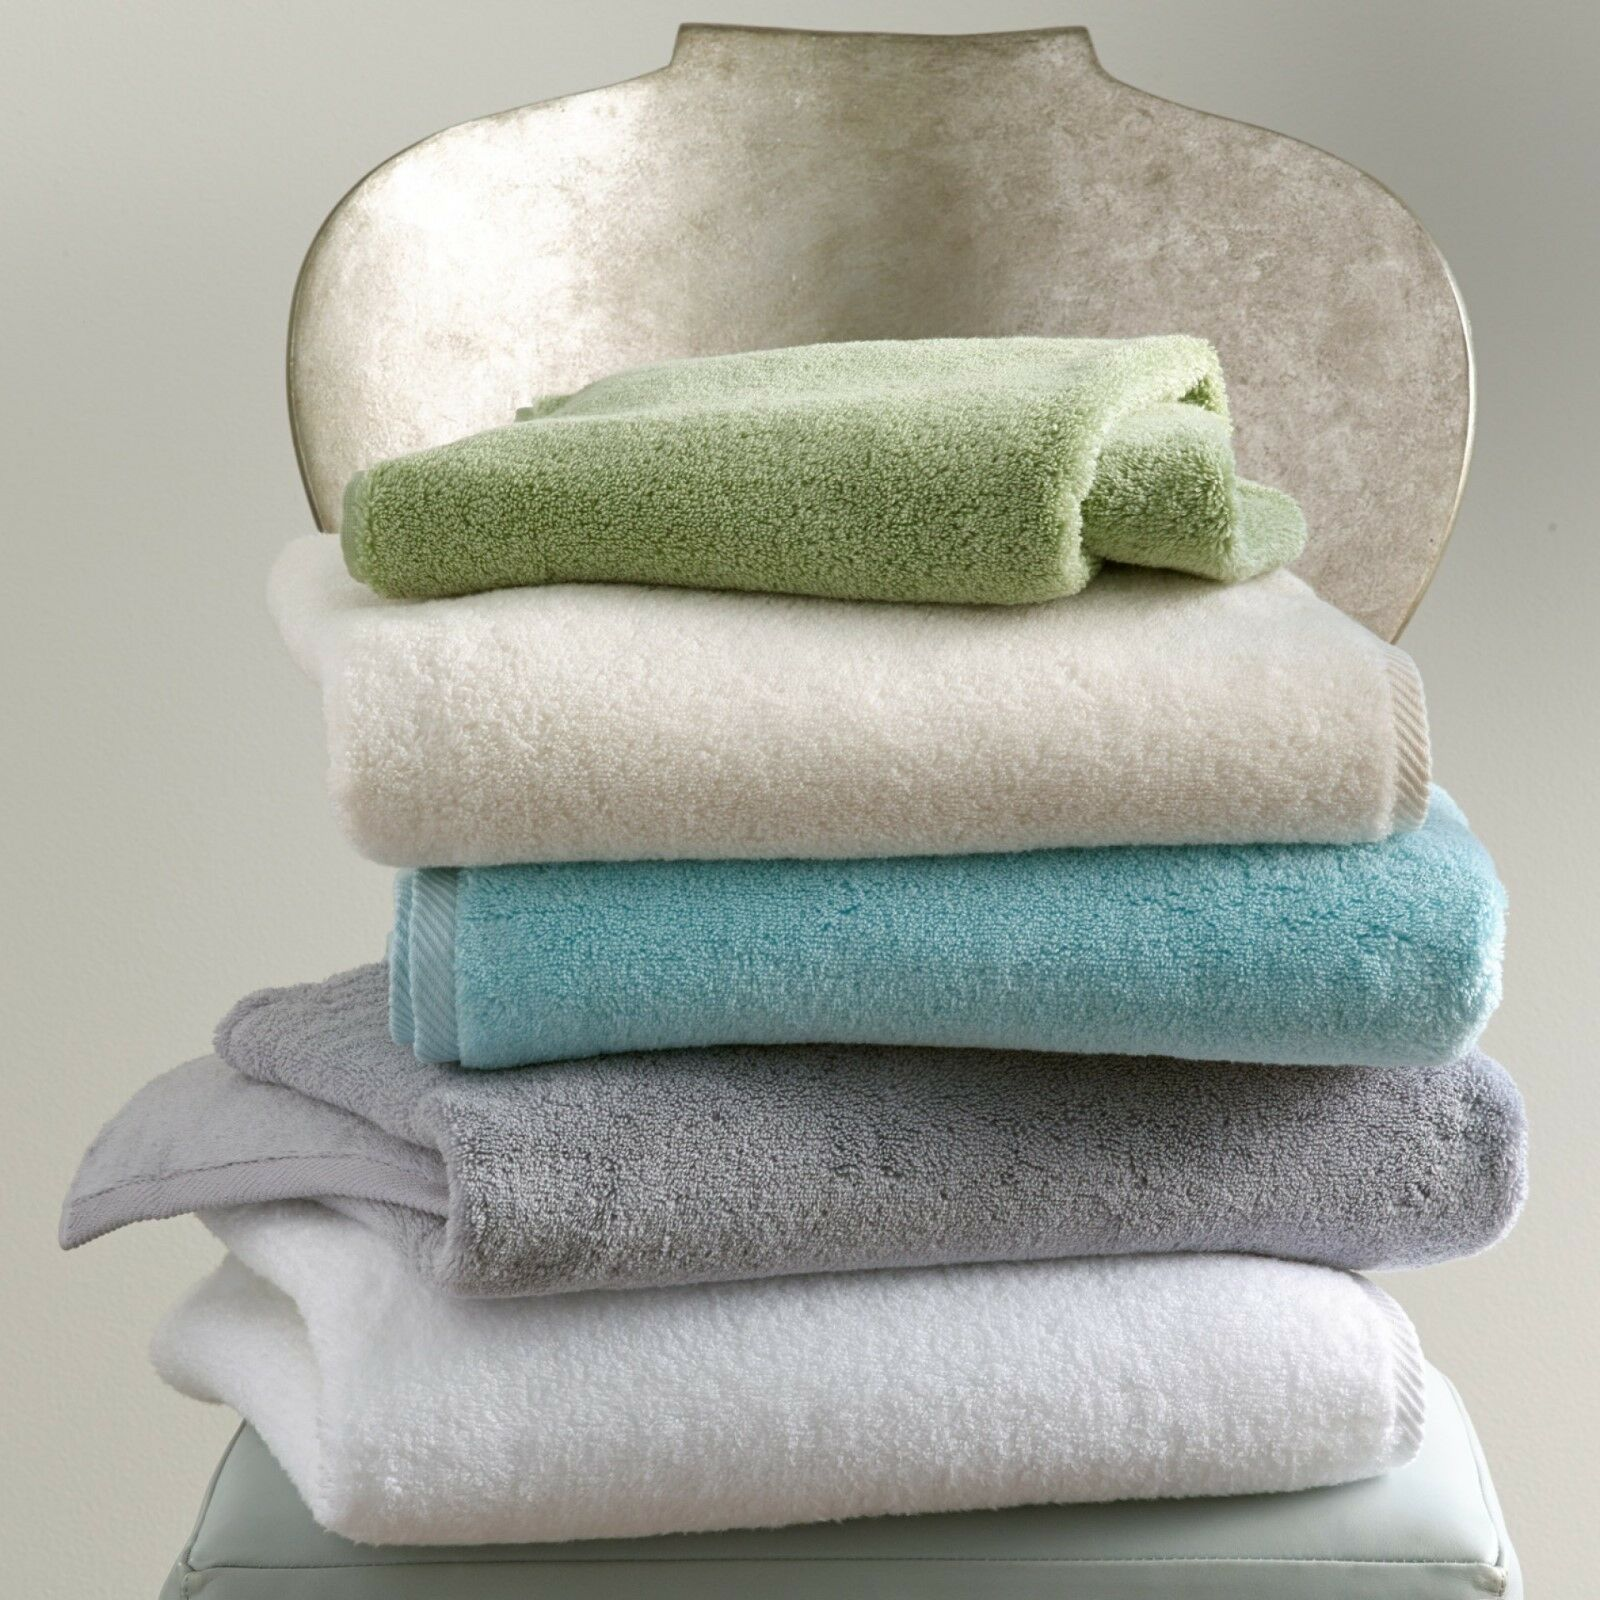 Matouk Milagro Bath Towel, Set of 4 Mineral